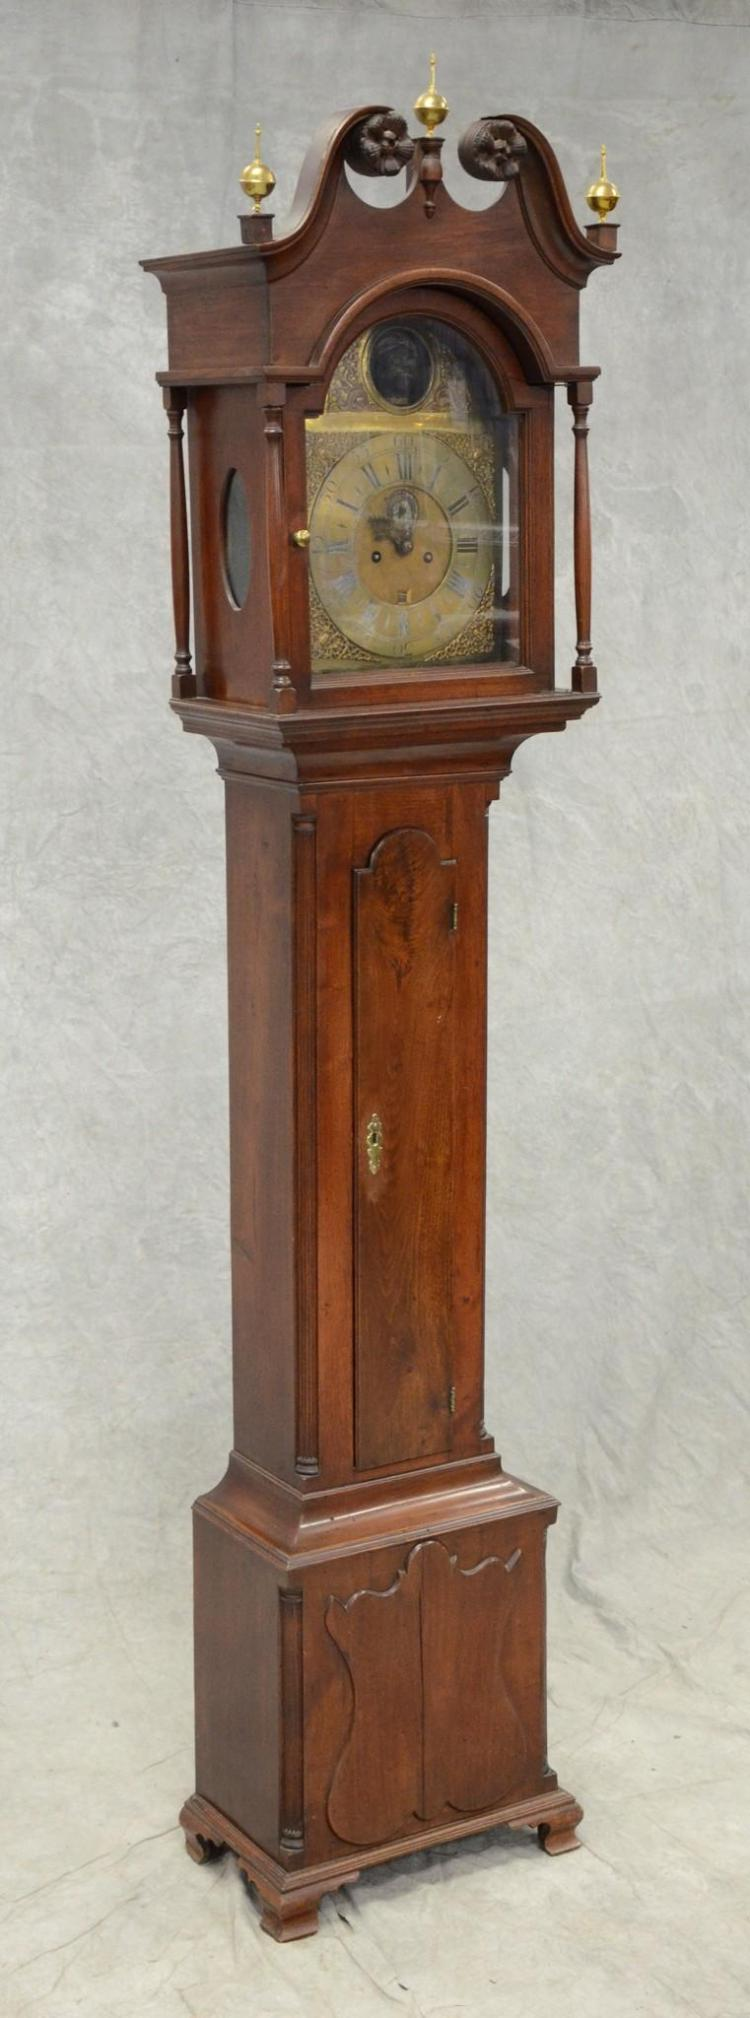 Walnut PA Chippendale tall case clock, containing a brass dial English 8 day movement, with an articulated nodding blackamoor head i...